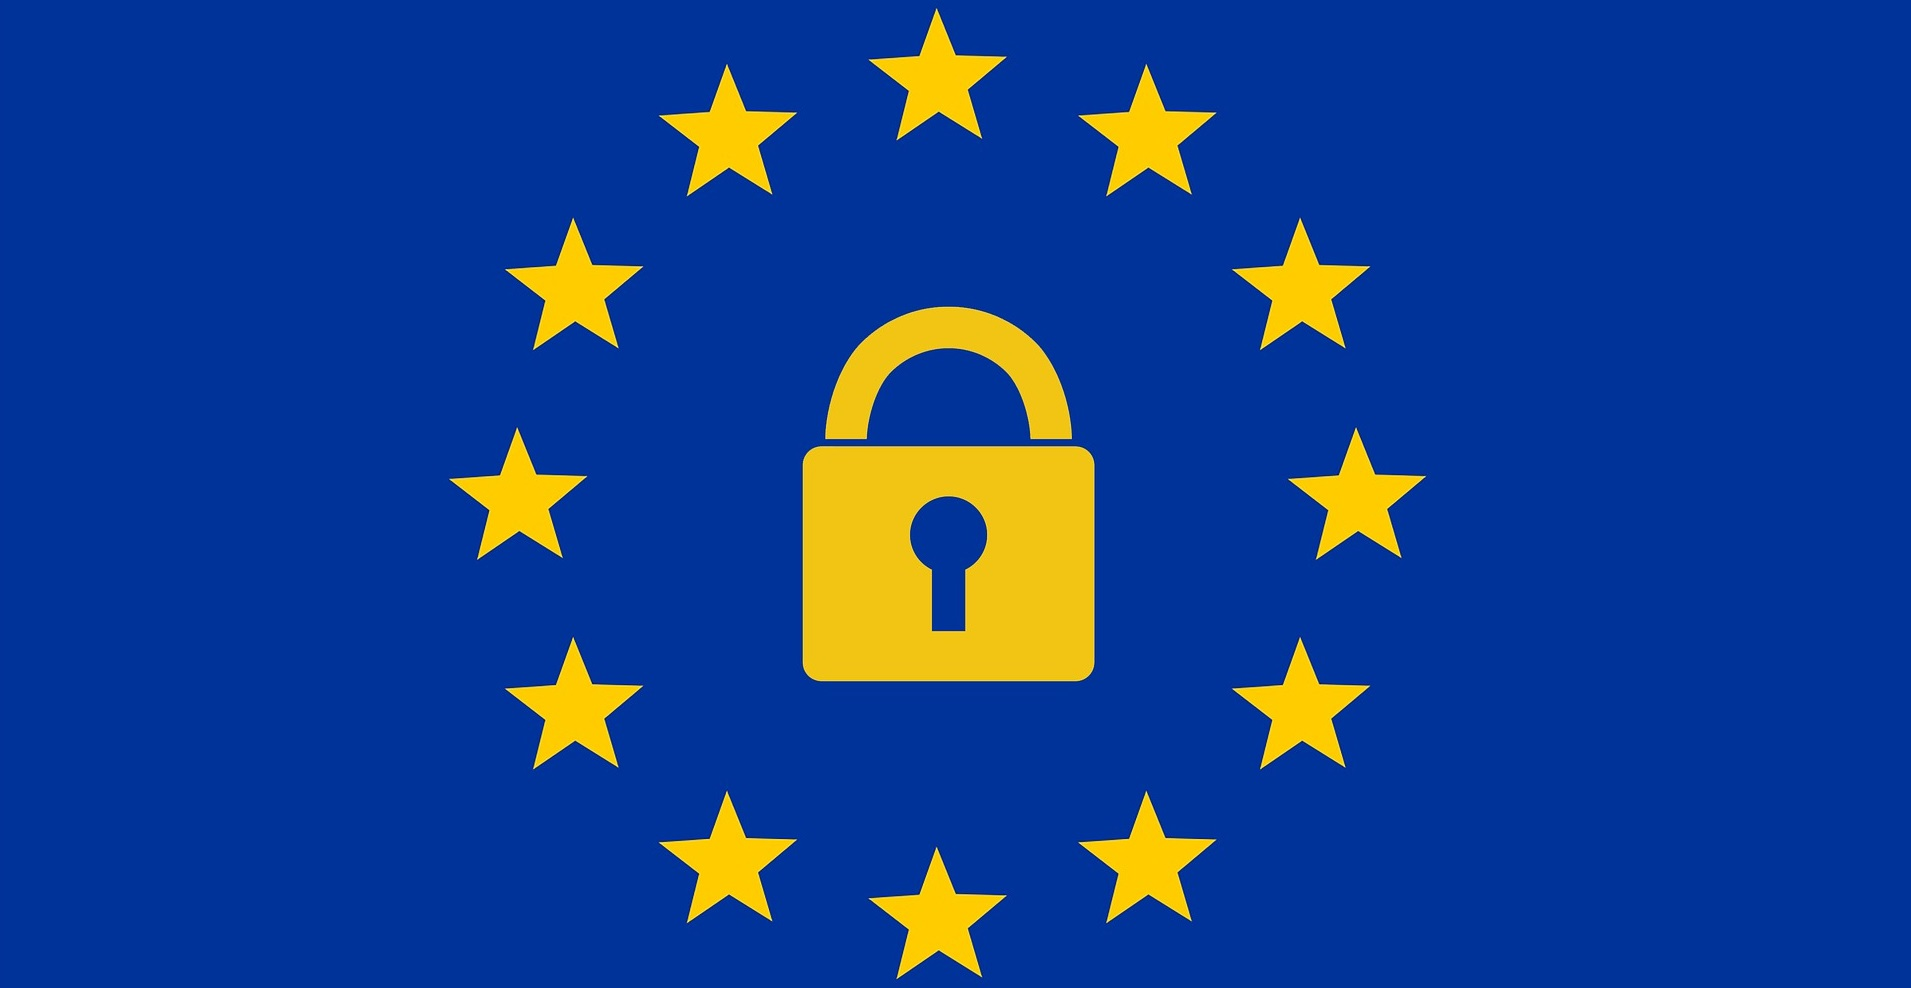 GDPR: Data Privacy Regulation and What it Means for Your Businesses